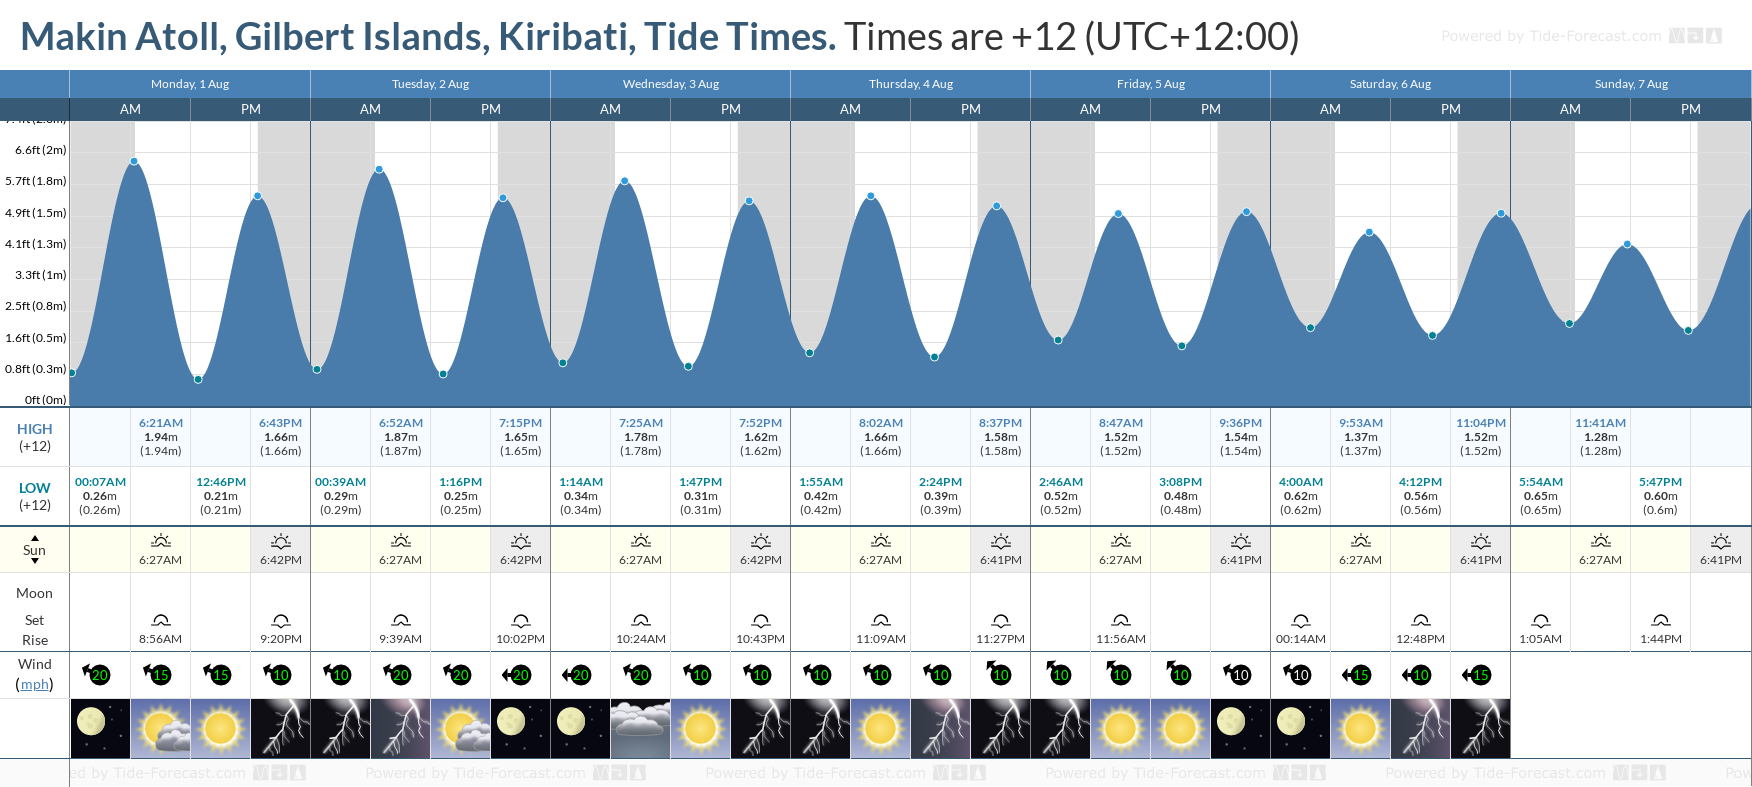 Makin Atoll, Gilbert Islands, Kiribati Tide Chart including high and low tide tide times for the next 7 days